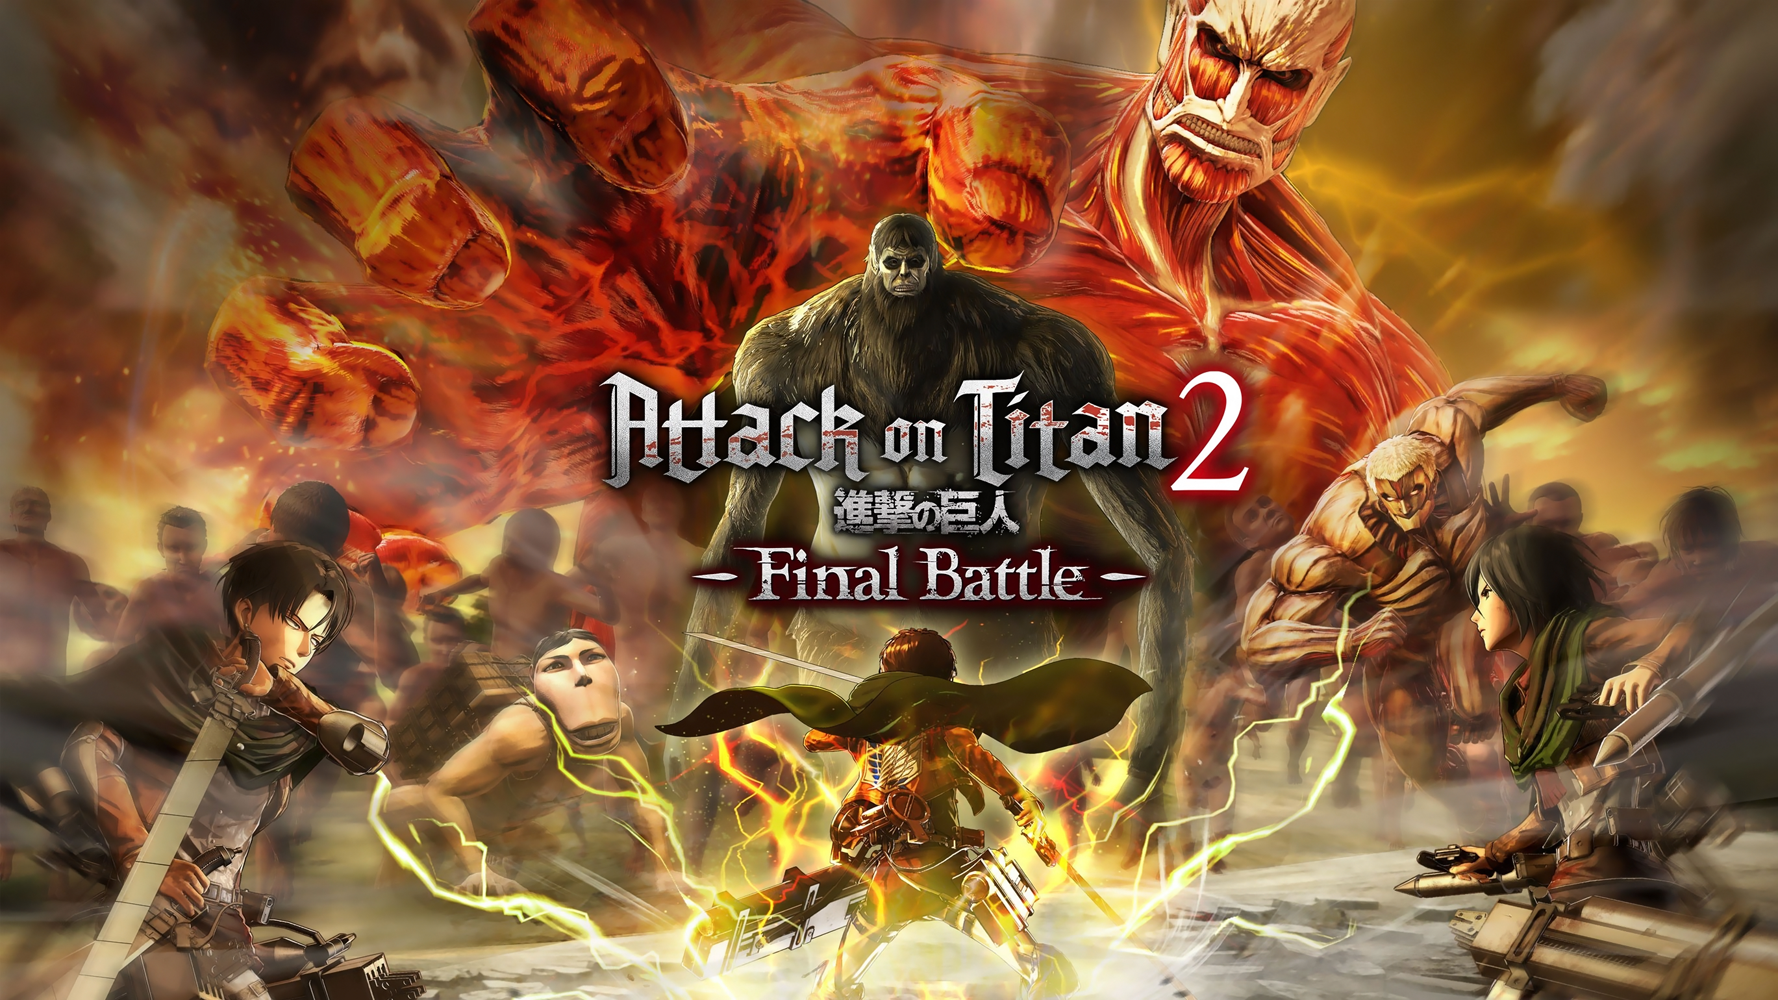 Attack on Titan 2: Final Battle Hands-On Preview - Beyond